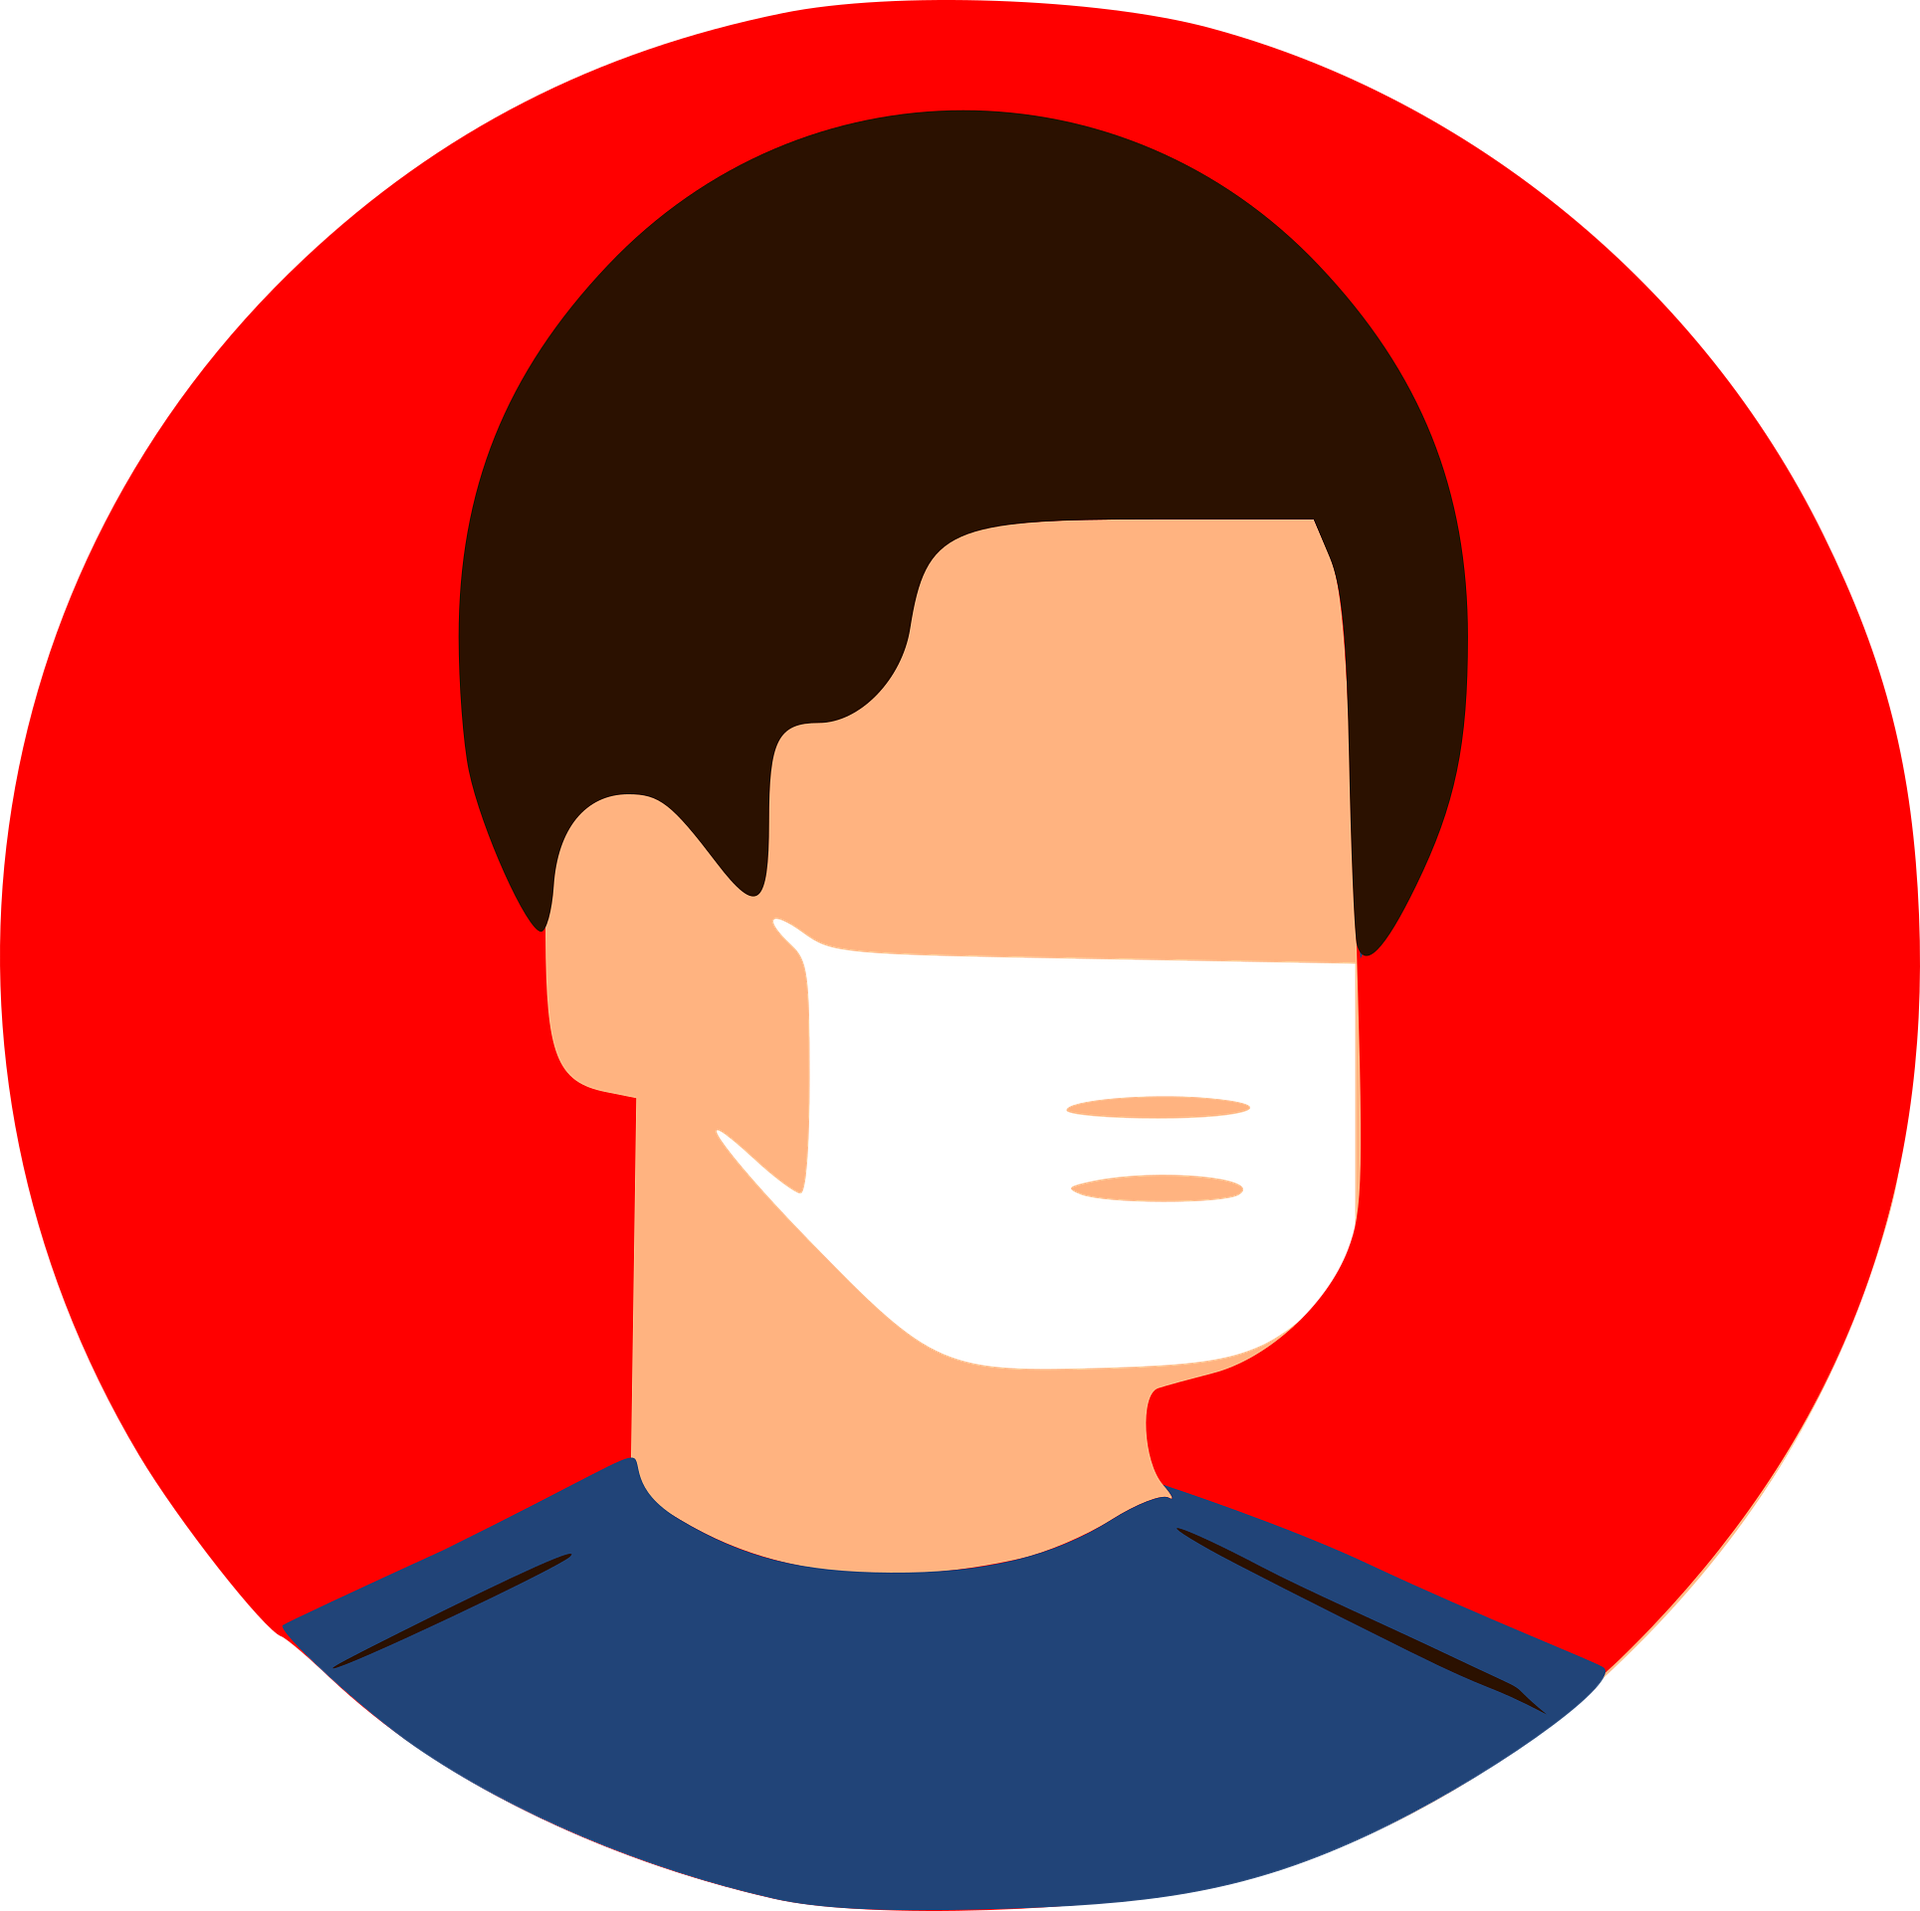 mask-4983883_1920.png